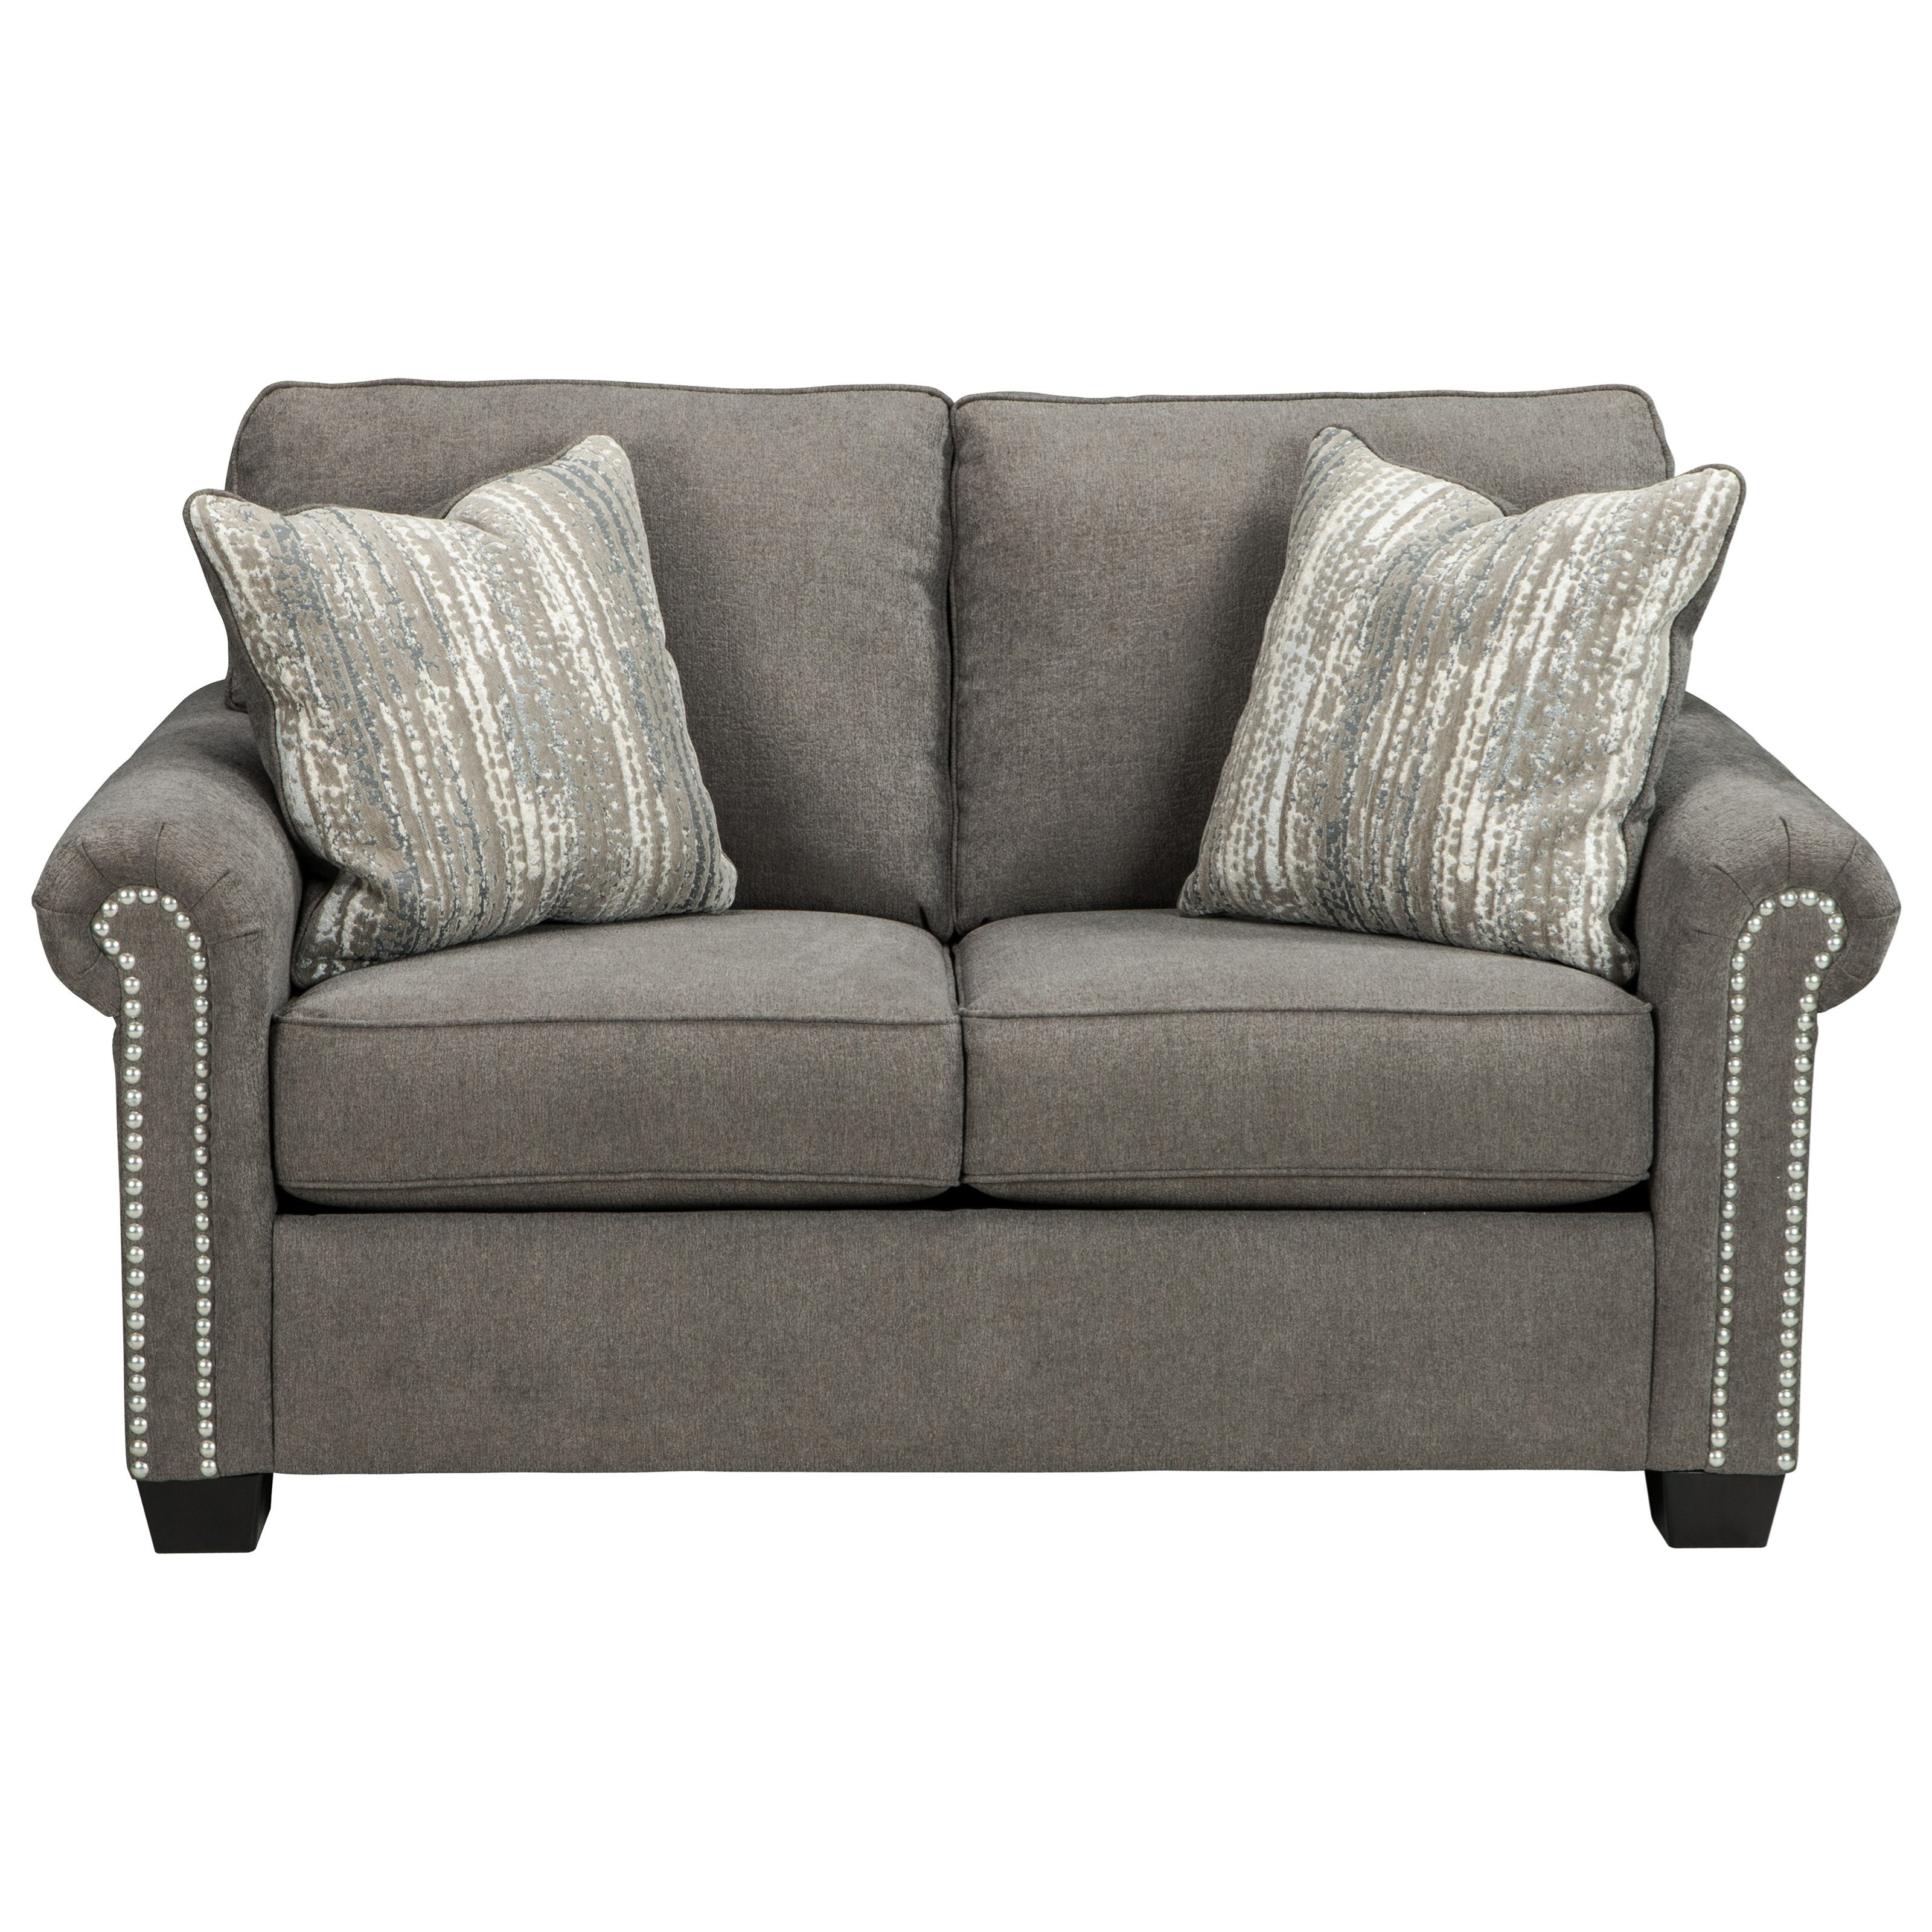 Benchcraft Gilman Transitional Loveseat With Nailheads